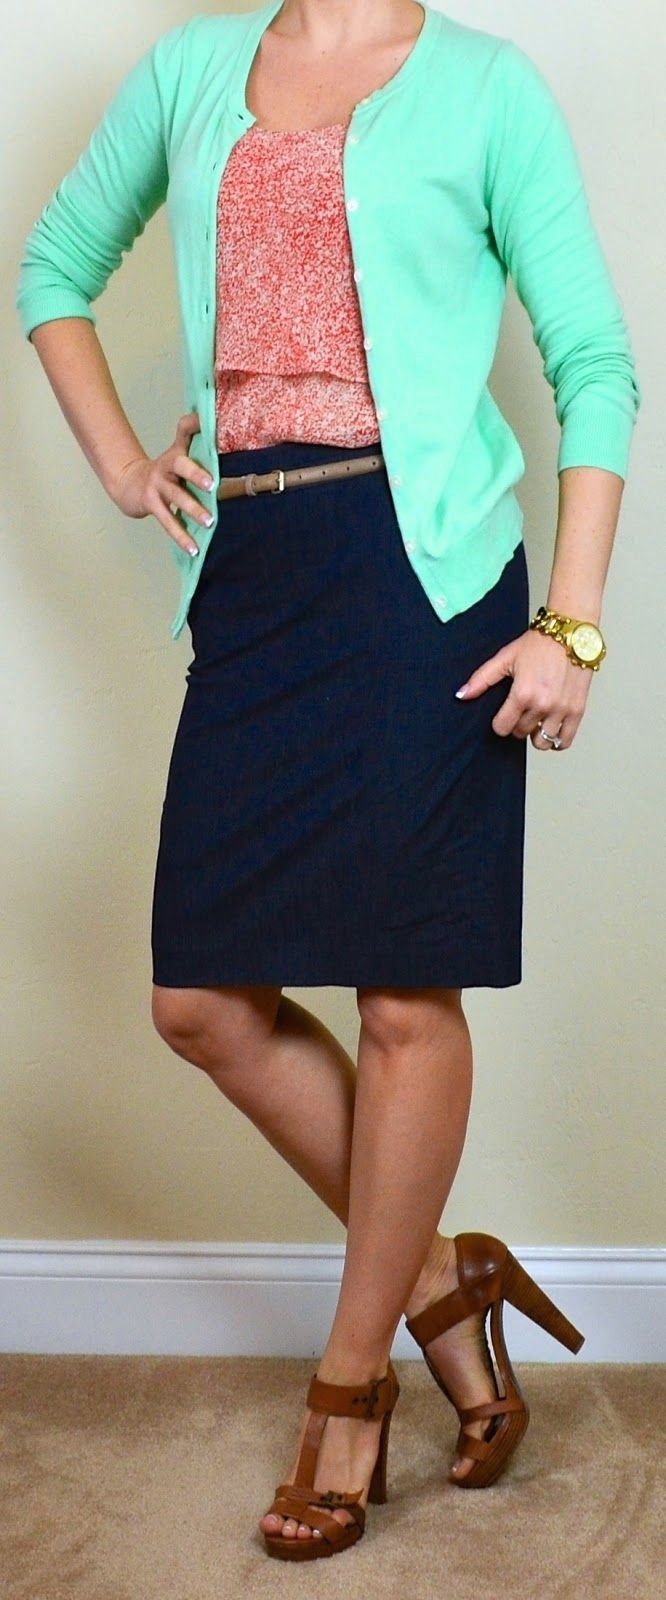 Outfit Posts: (outfits 26-30) one suitcase: business casual capsule wardrobe | 1000